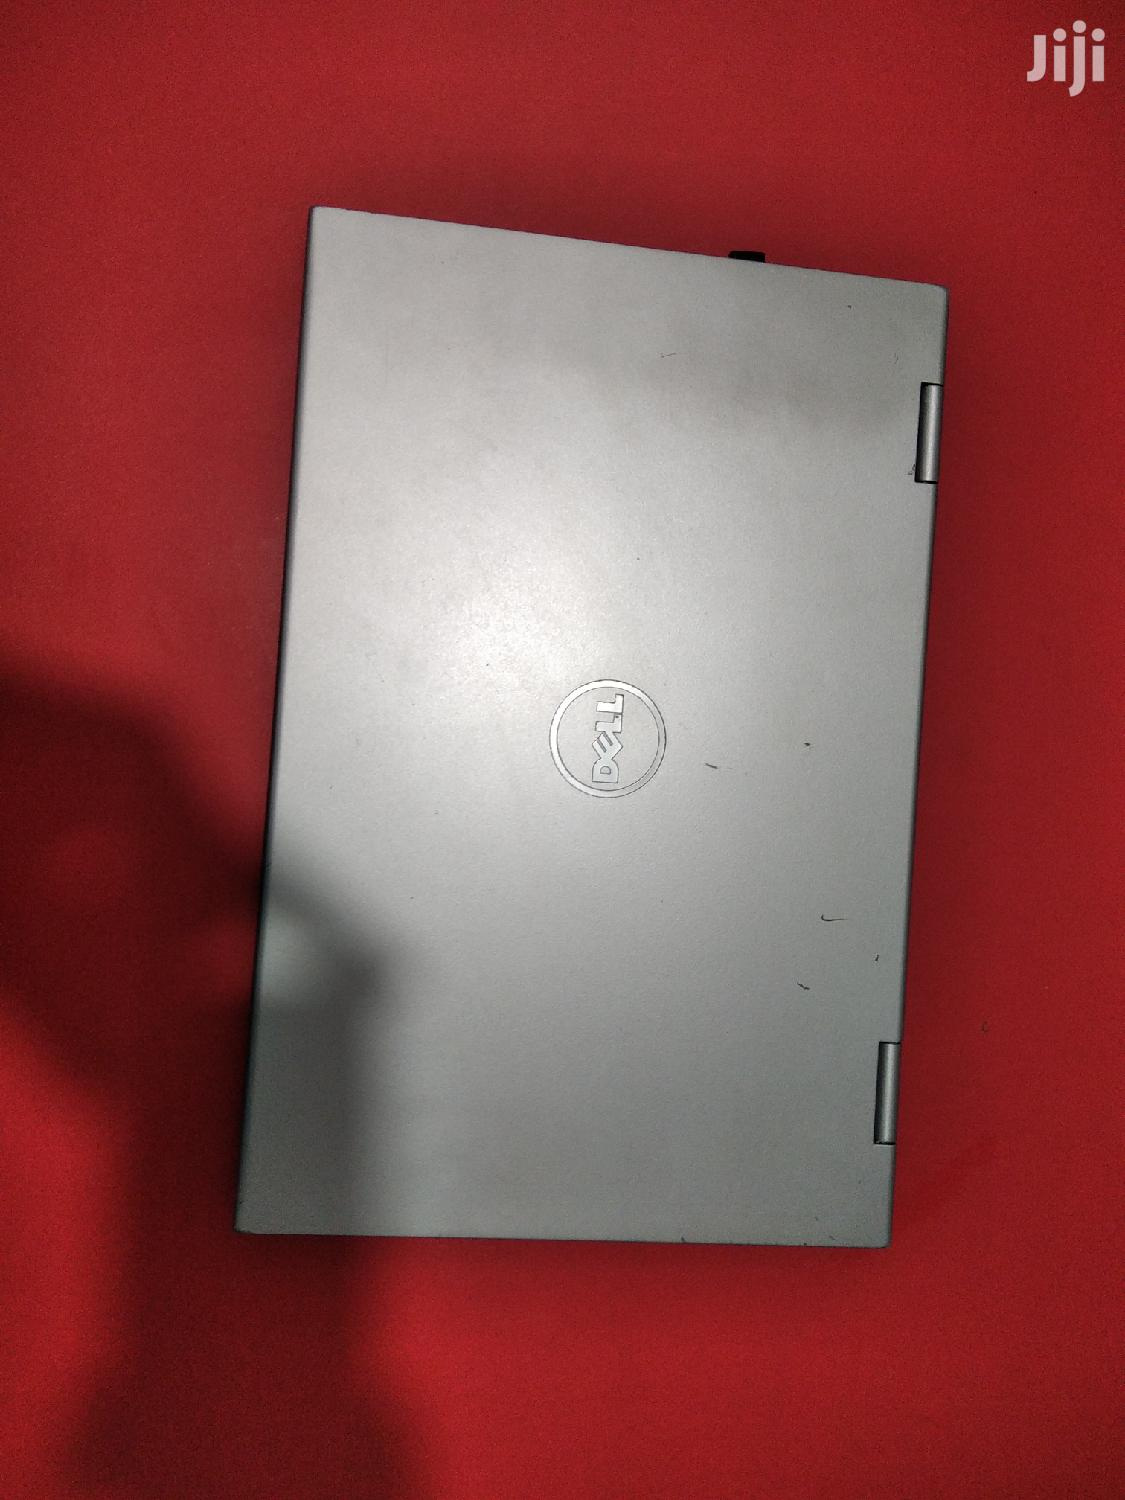 Laptop Dell Inspiron 11 3000 4GB Intel Core I3 HDD 1T | Laptops & Computers for sale in Kampala, Central Region, Uganda